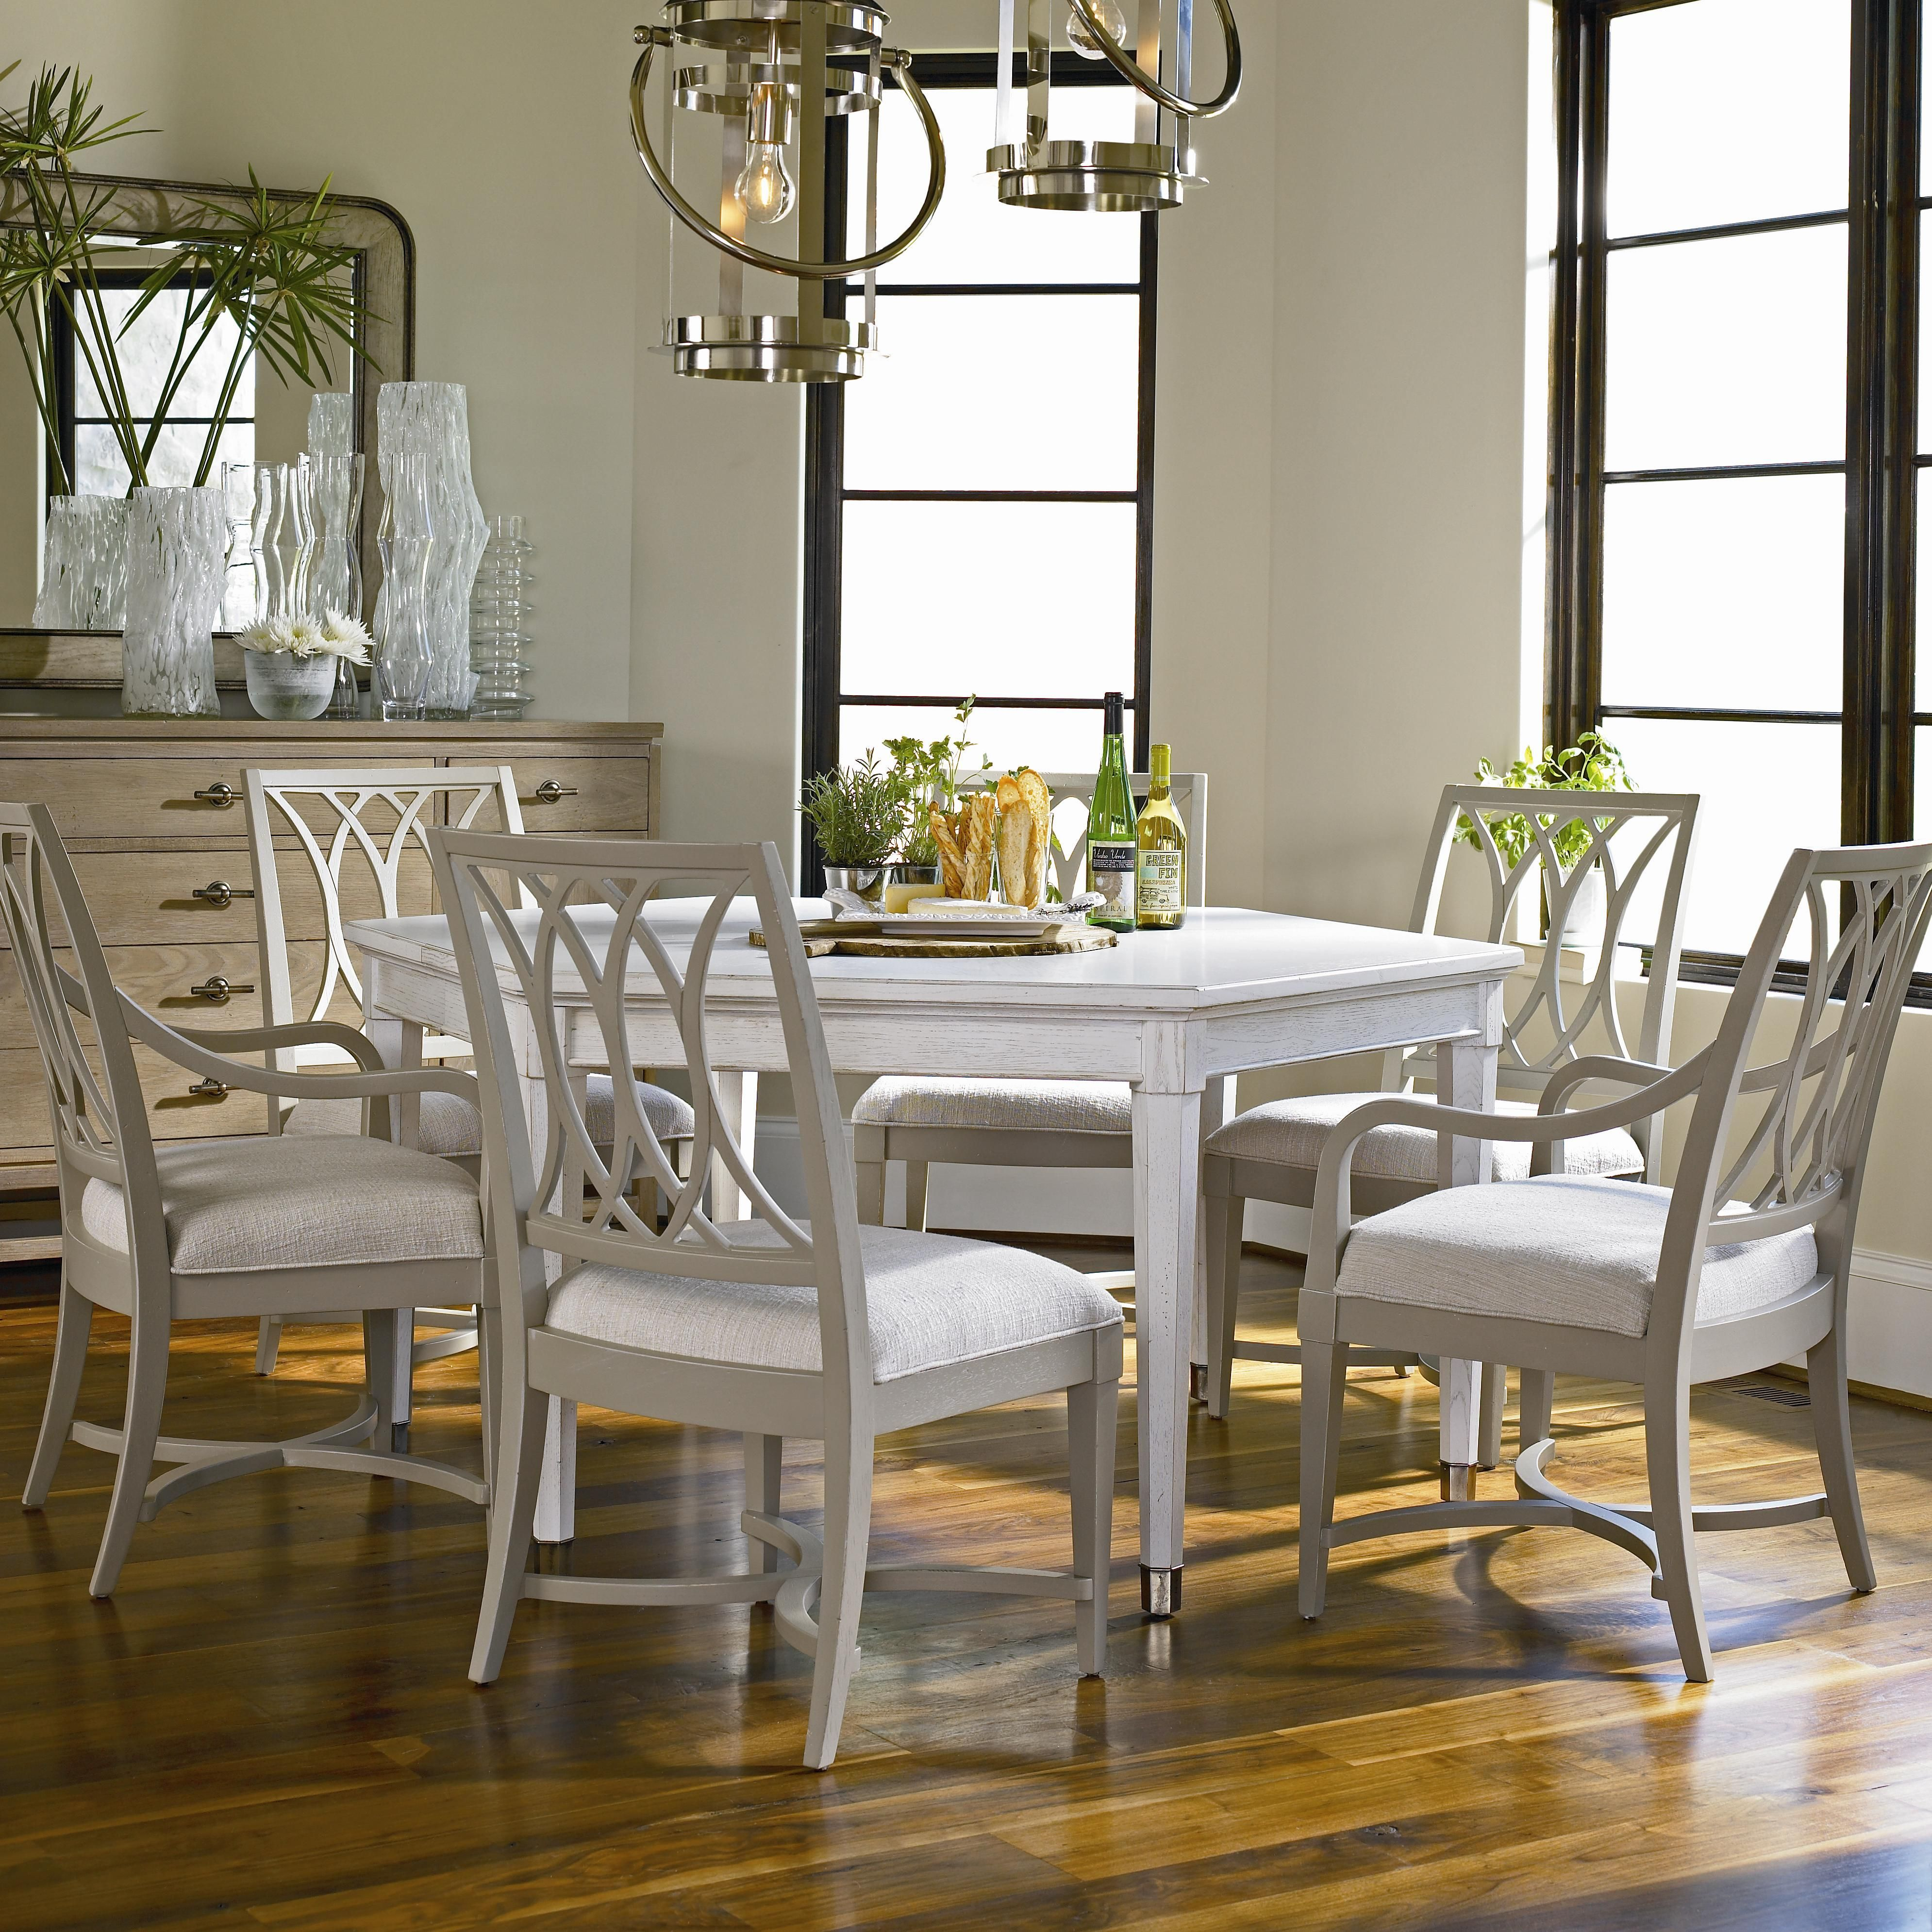 Chairs Stanley Furniture Coastal Living Dining Table In Kitchen